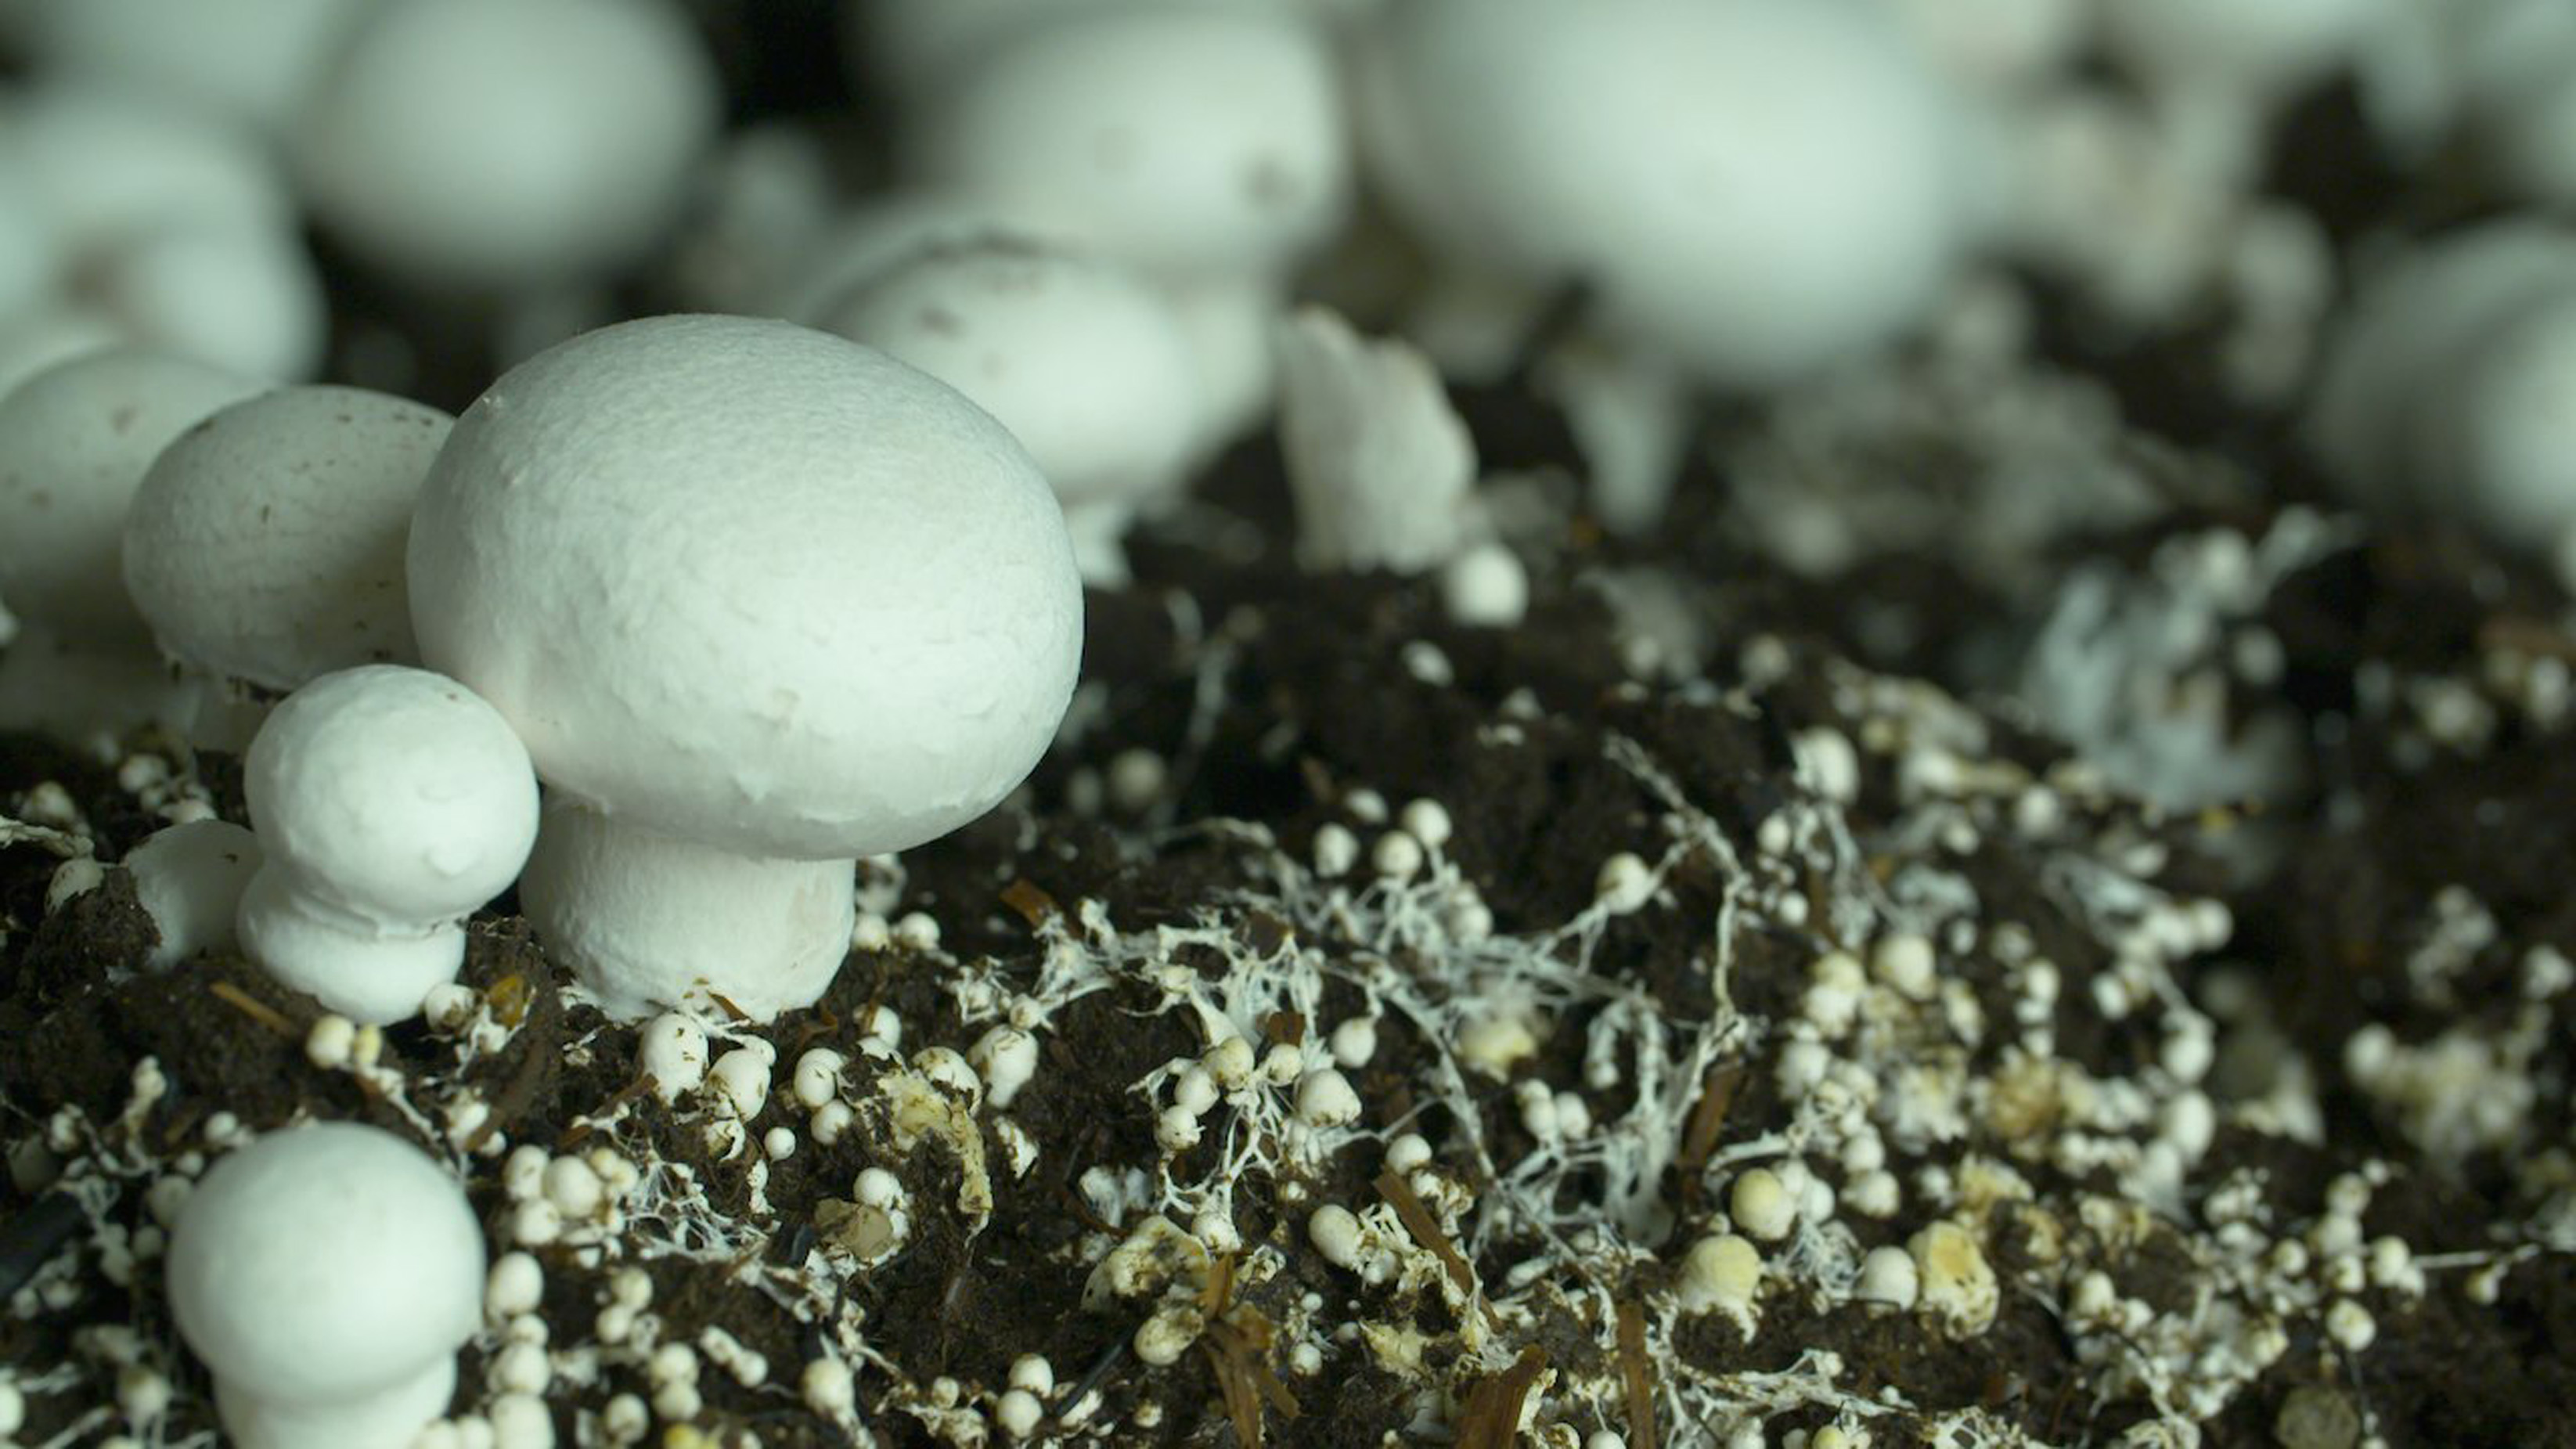 WESTERN ONTARIO: Leamington mushroom fined $75,000 after worker injured